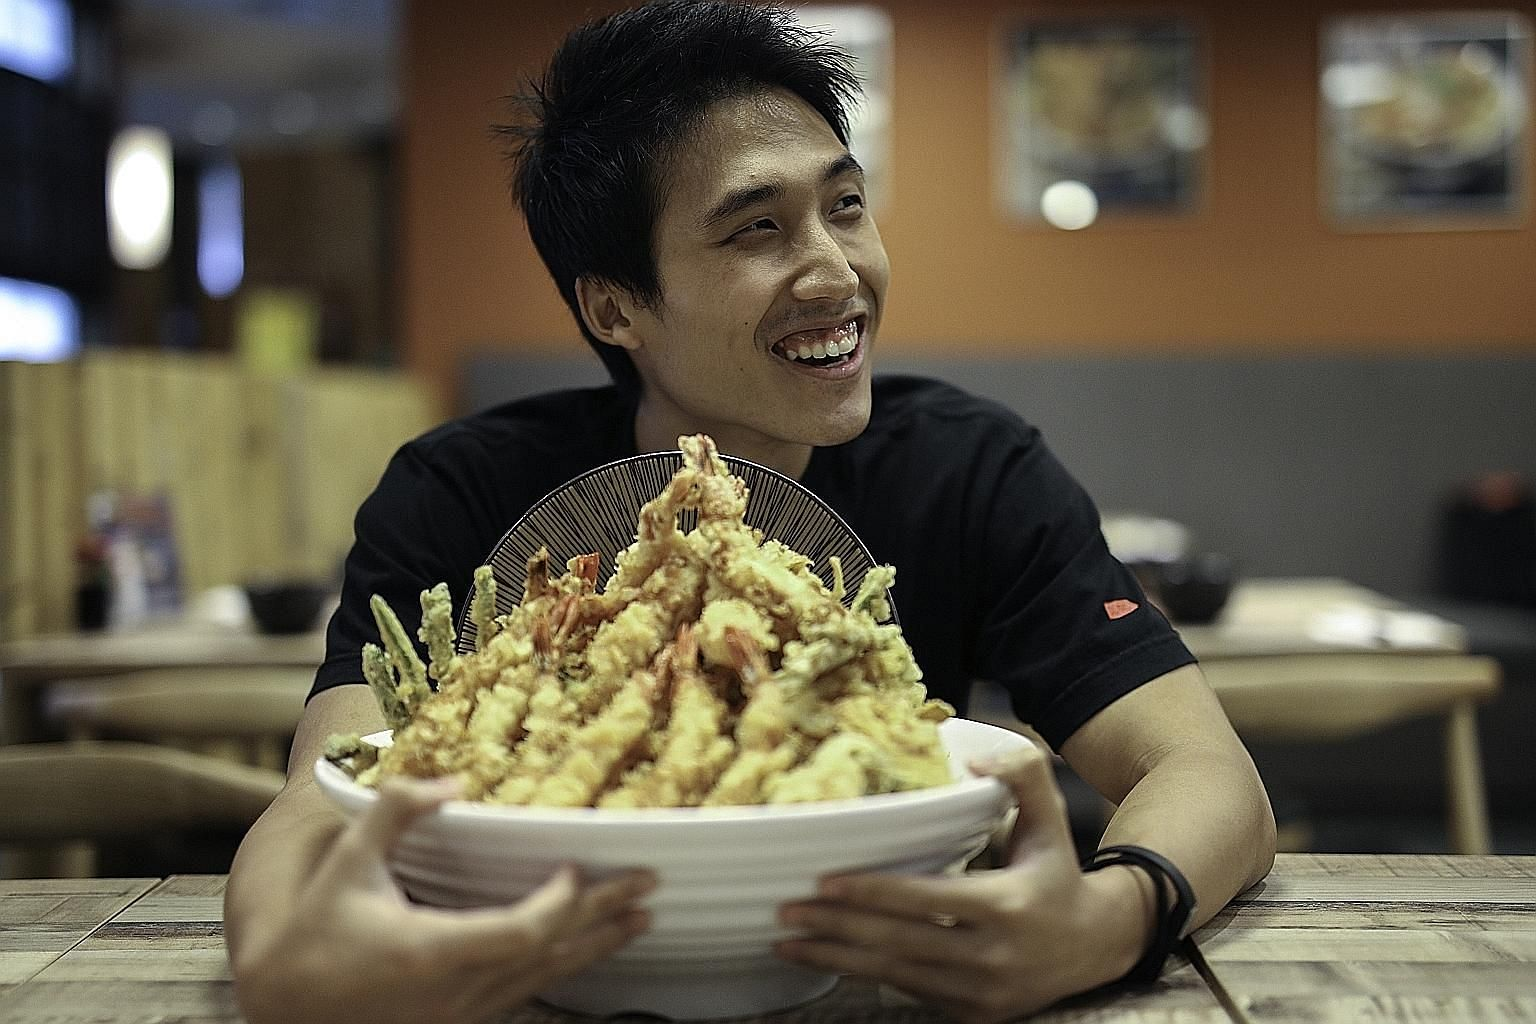 Mr Zermatt Neo finished a 3.2kg bowl of tendon - tempura on Japanese rice - in 20 minutes and 39 seconds at Ramen Champion's new Don Meijin at Bugis+.